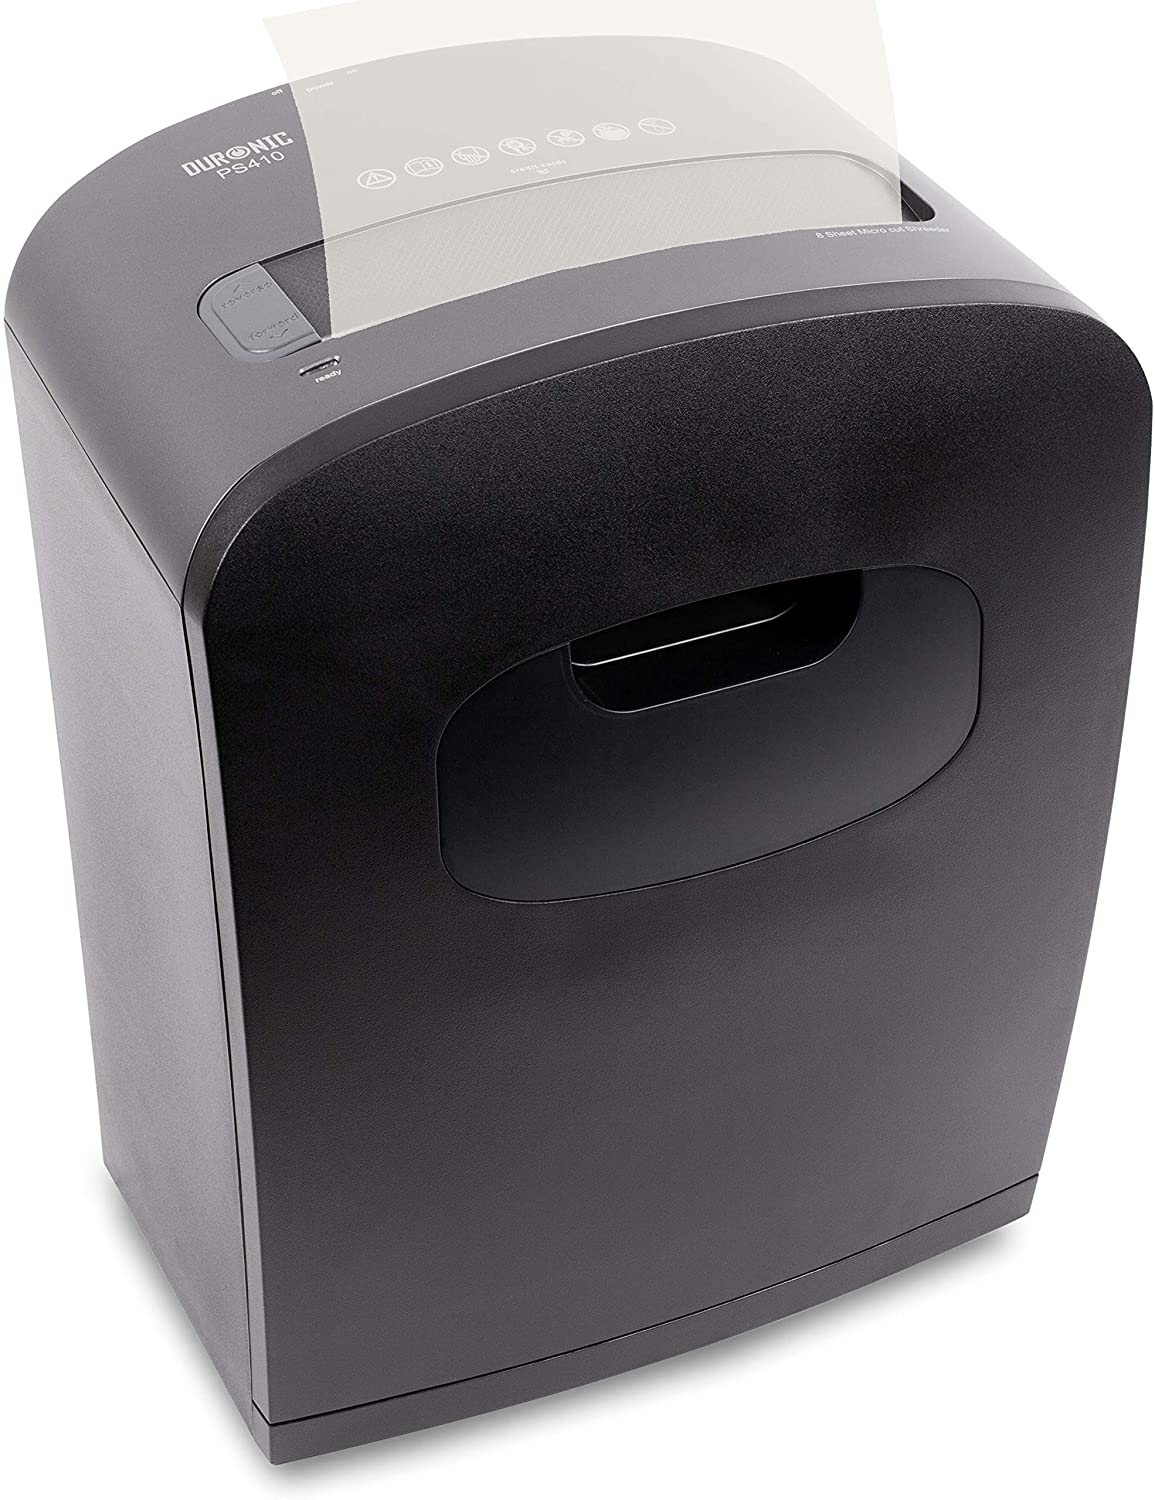 Duronic Paper Shredder PS410 6-8 A4 Sheets at a Time Micro Cut Electric Shredder 14 Litre Bin Thermal Overload Protection for Home or Office uk reviews